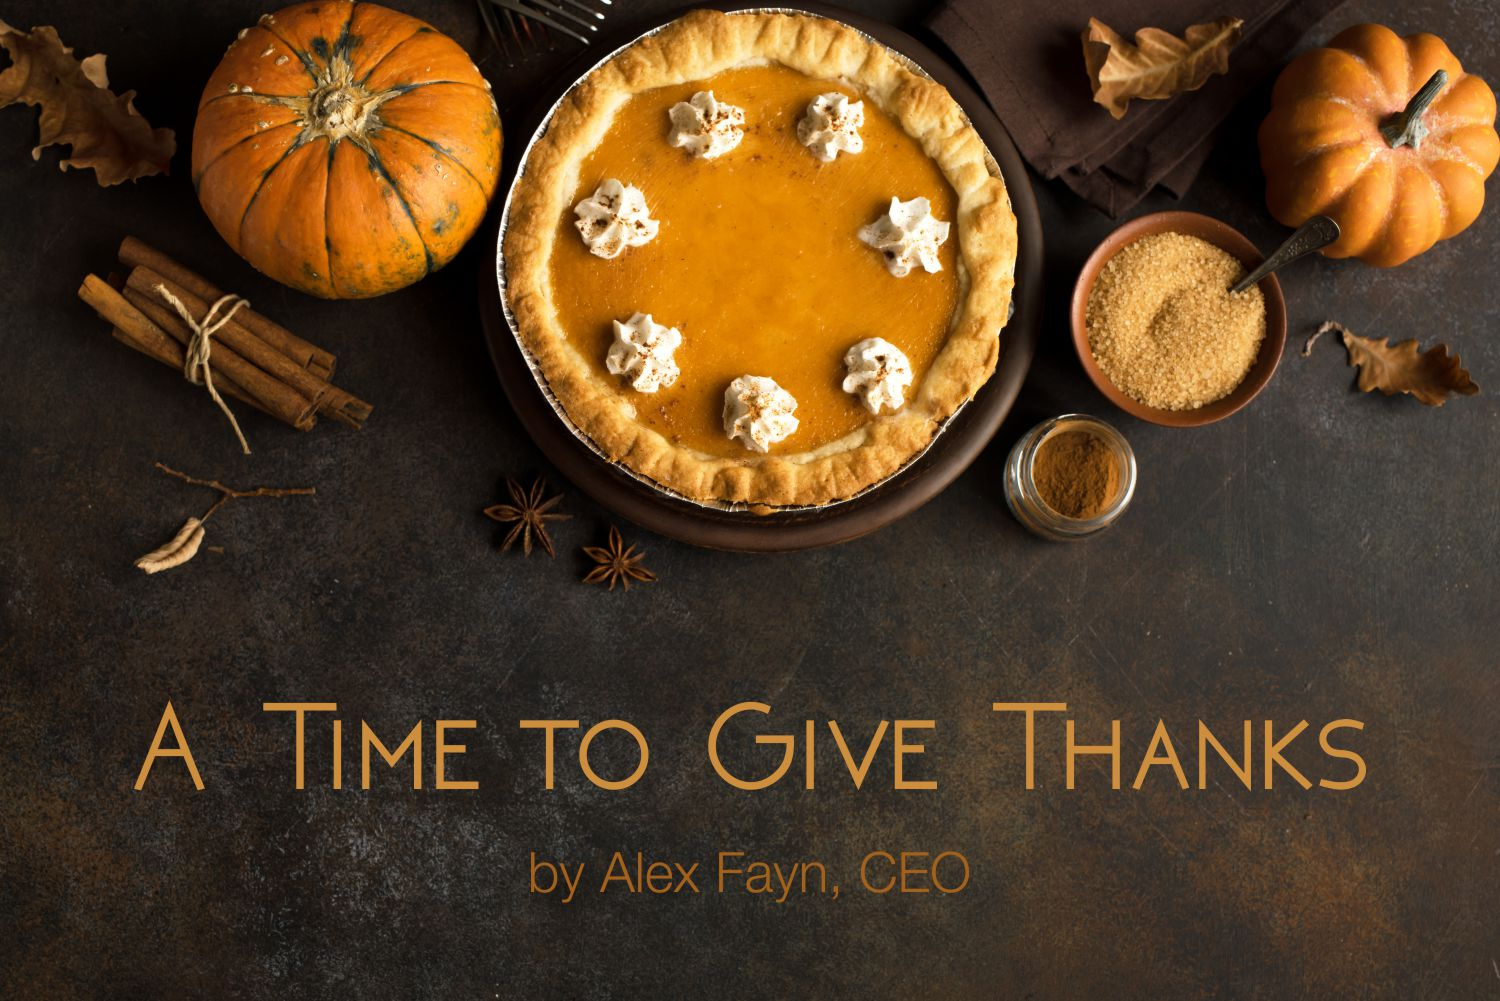 Thanksgiving message from S-NET CEO Alex Fayn